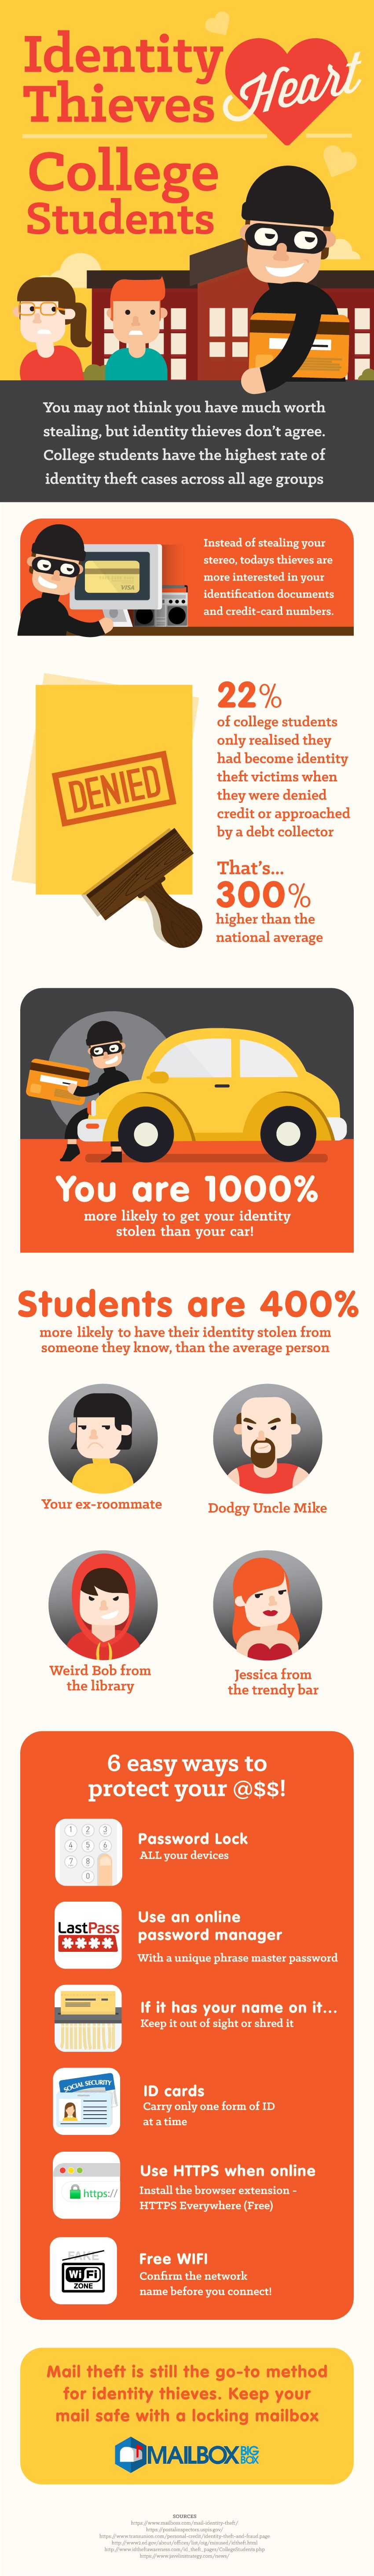 Identity Thieves Heart College Students